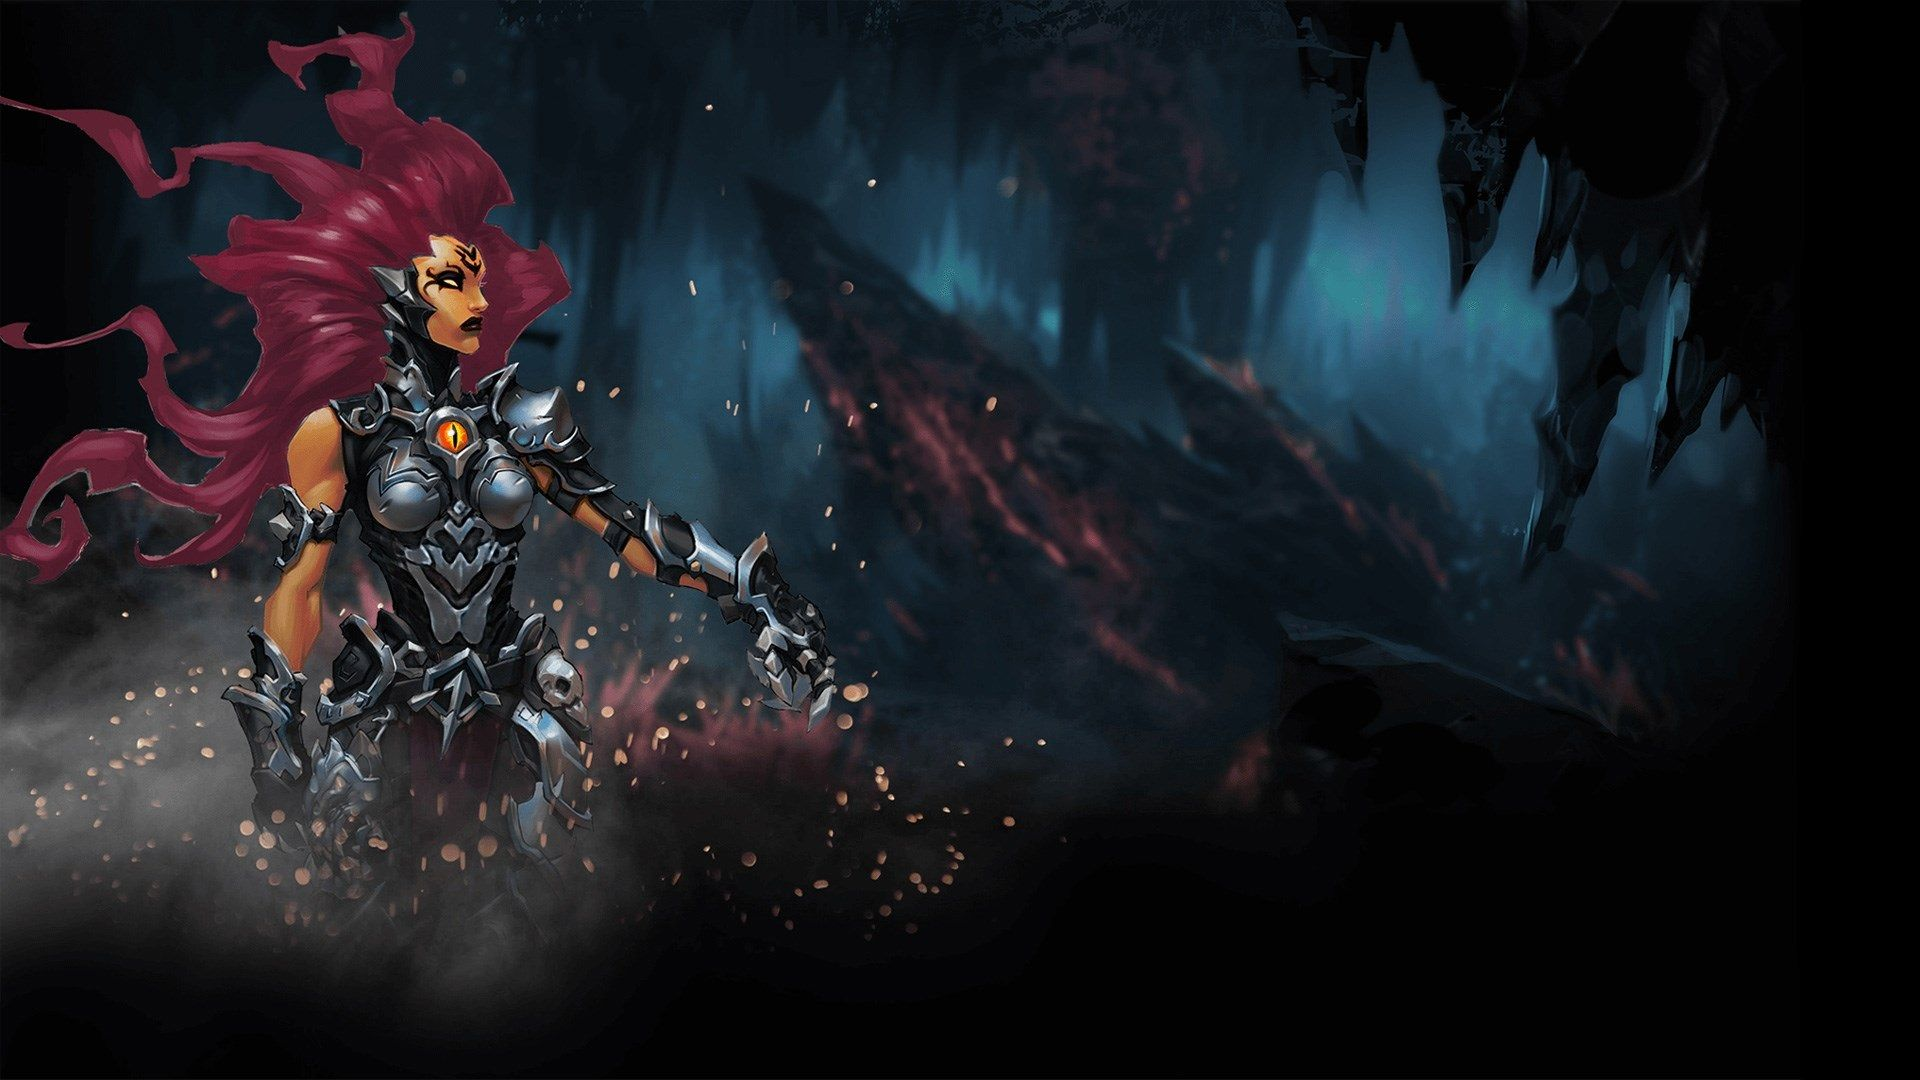 1920x1080 darksiders 3 wallpaper download for pc hd Badass 1920x1080